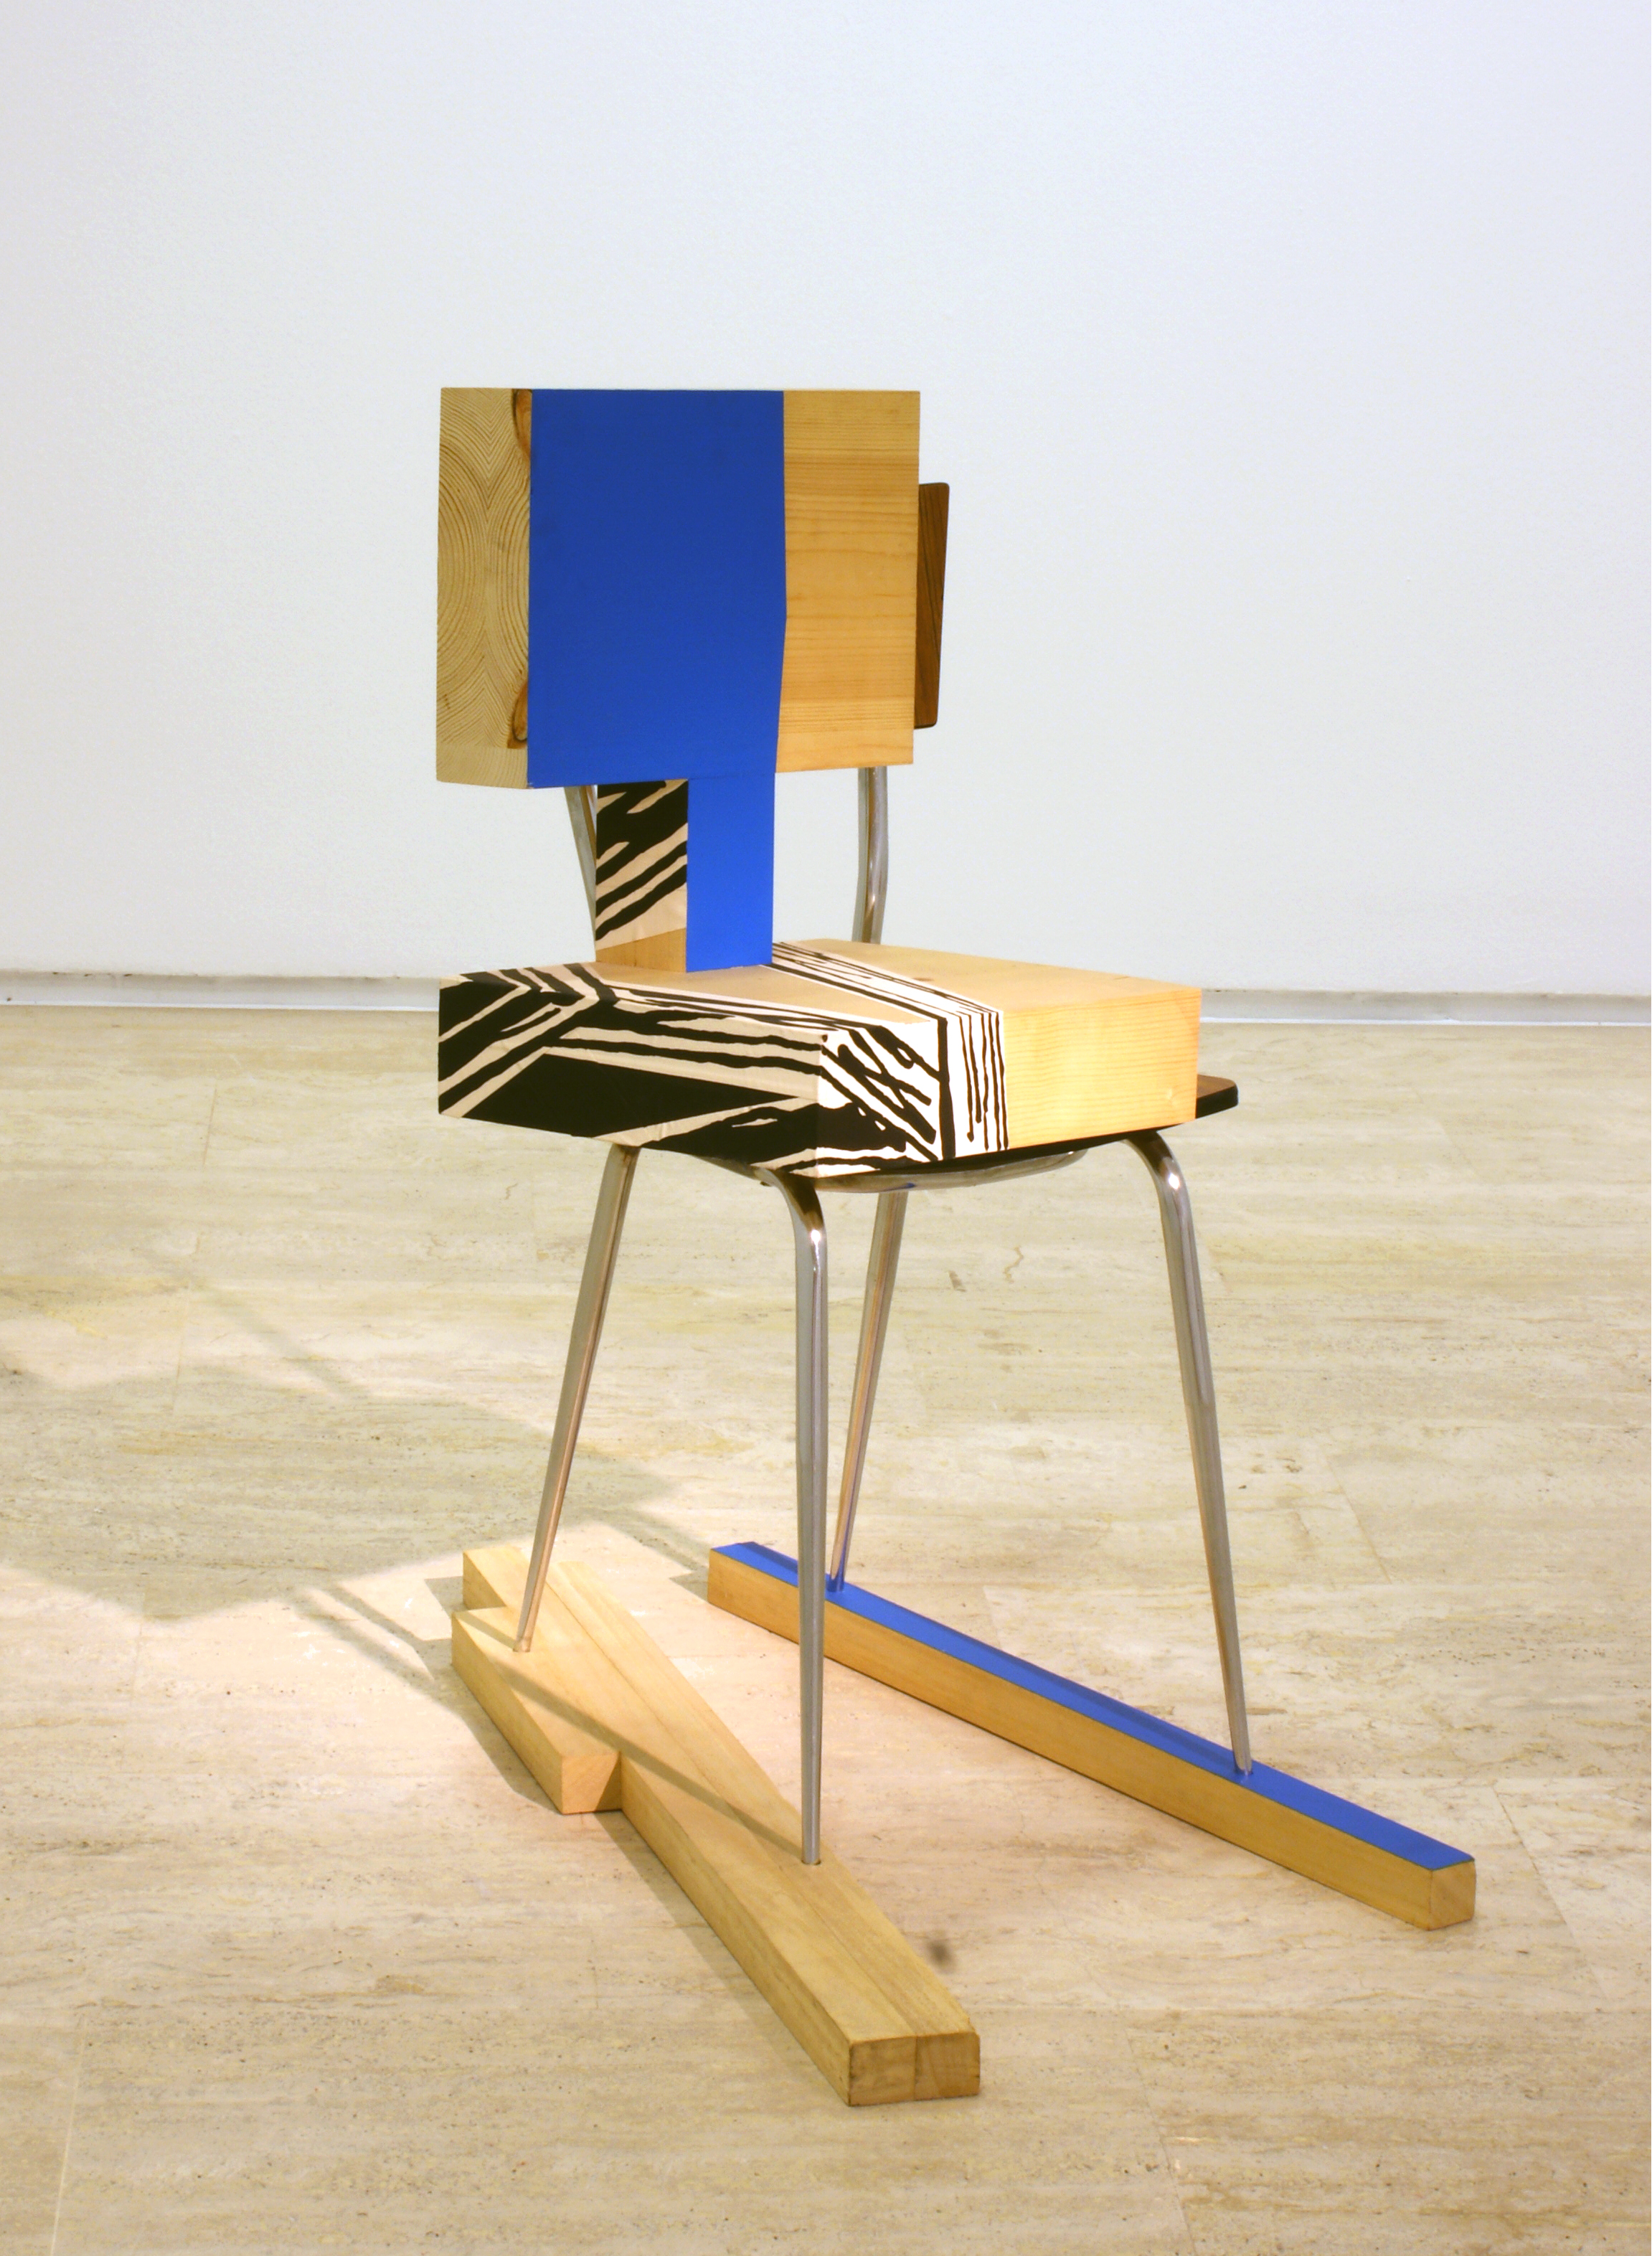 Pello Irazu   Shadow (Sombra) , 2002 Chair, wood, adhesive tape, and paint 93 x 50 x 90 cm Collection of the artist © VEGAP, Bilbao, 2017